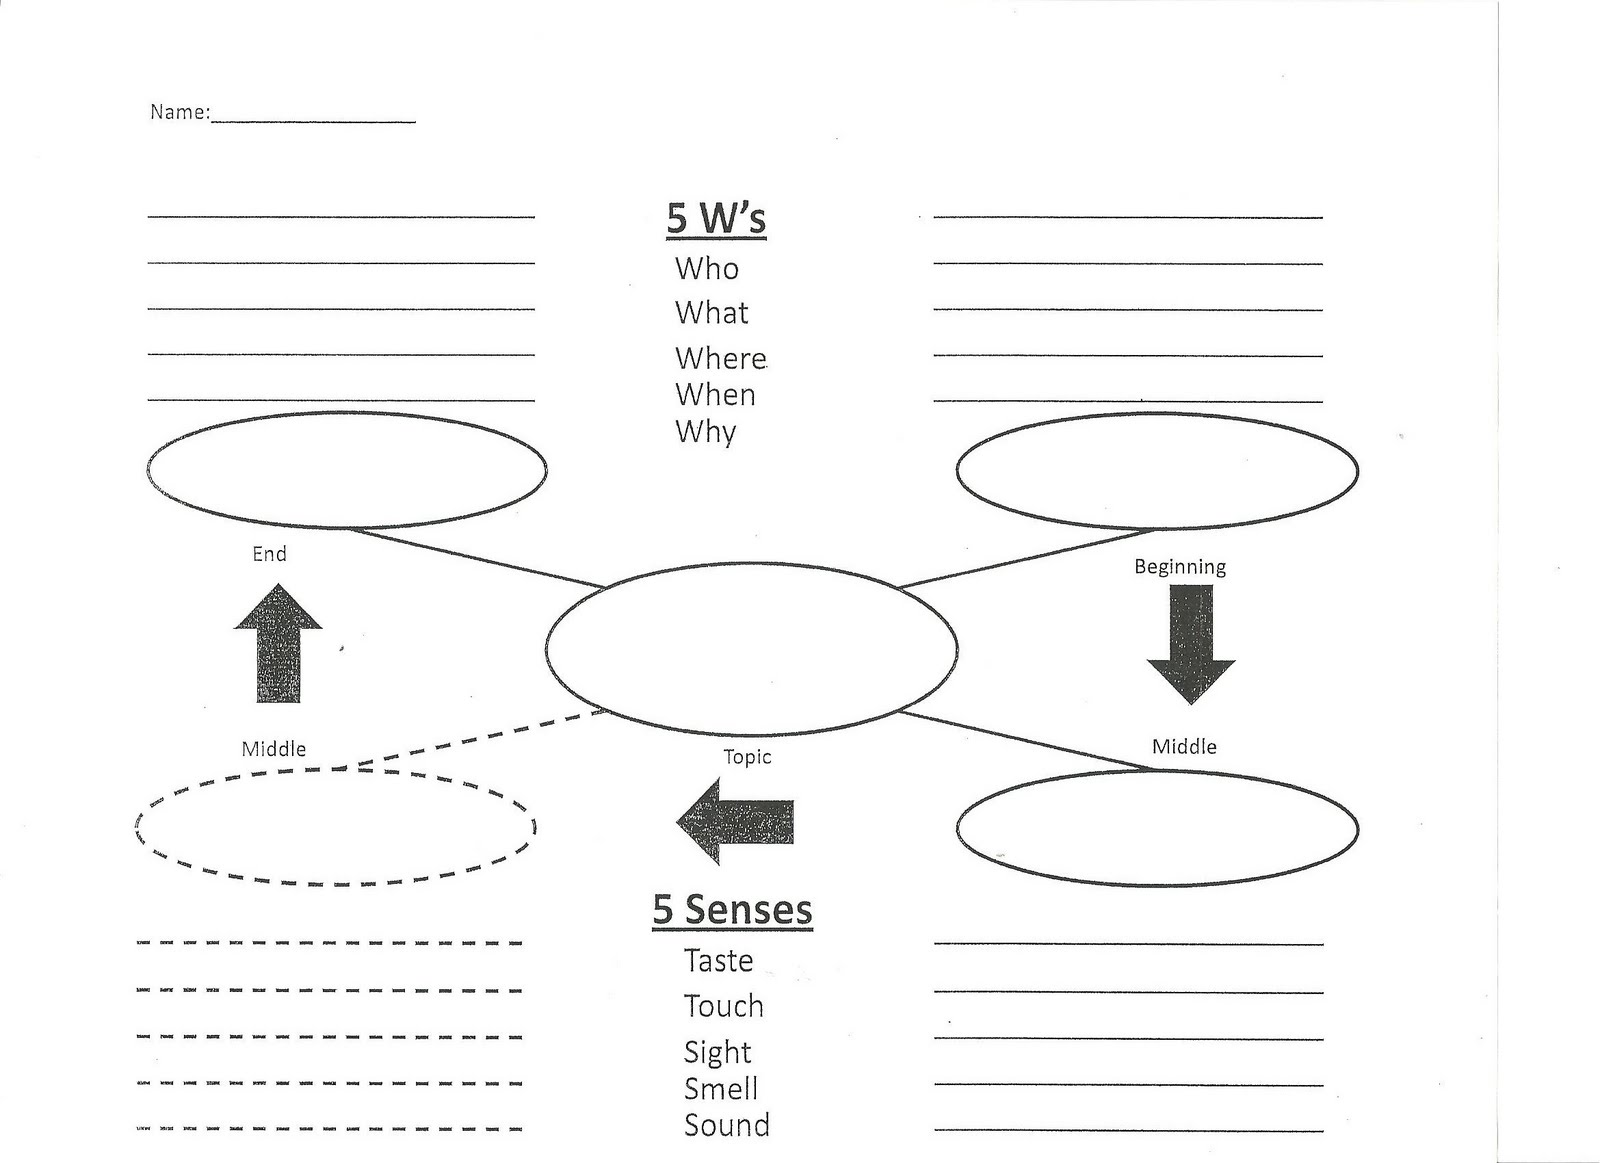 narrative essays graphic organizer Graphic organizer for writing a narrative essay - mblc breadmaking about paragraph you do what facts graphic organizers changing be youll then paragraph.